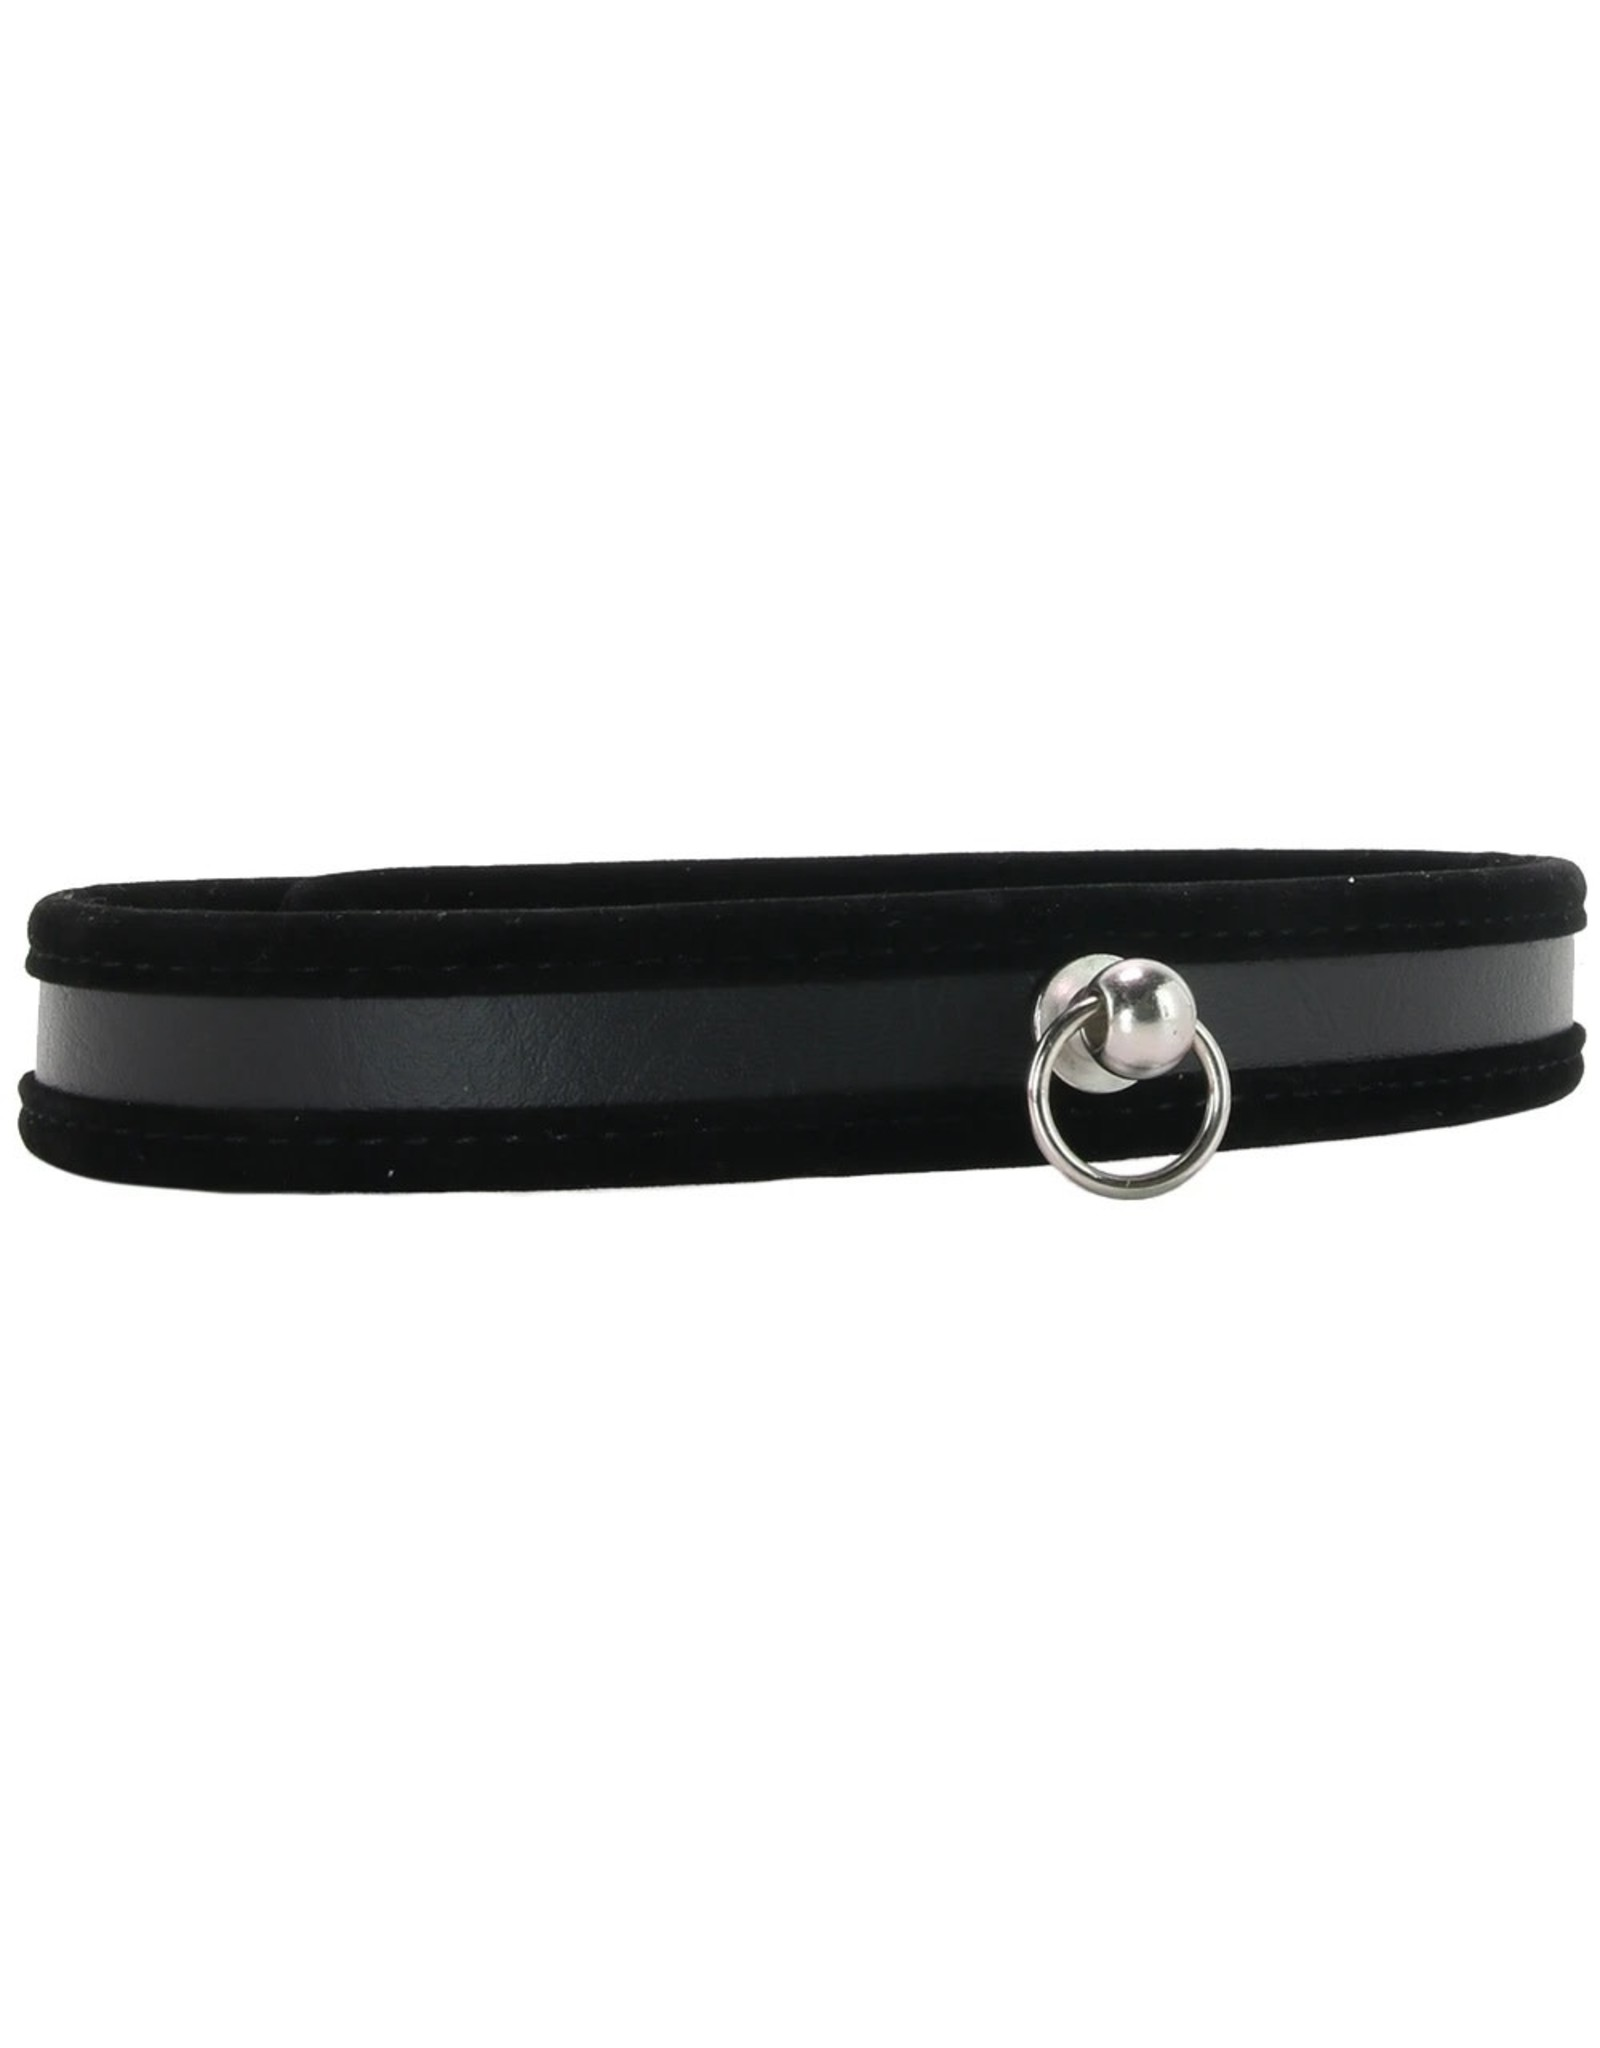 Sportsheets S&M Black Day Collar